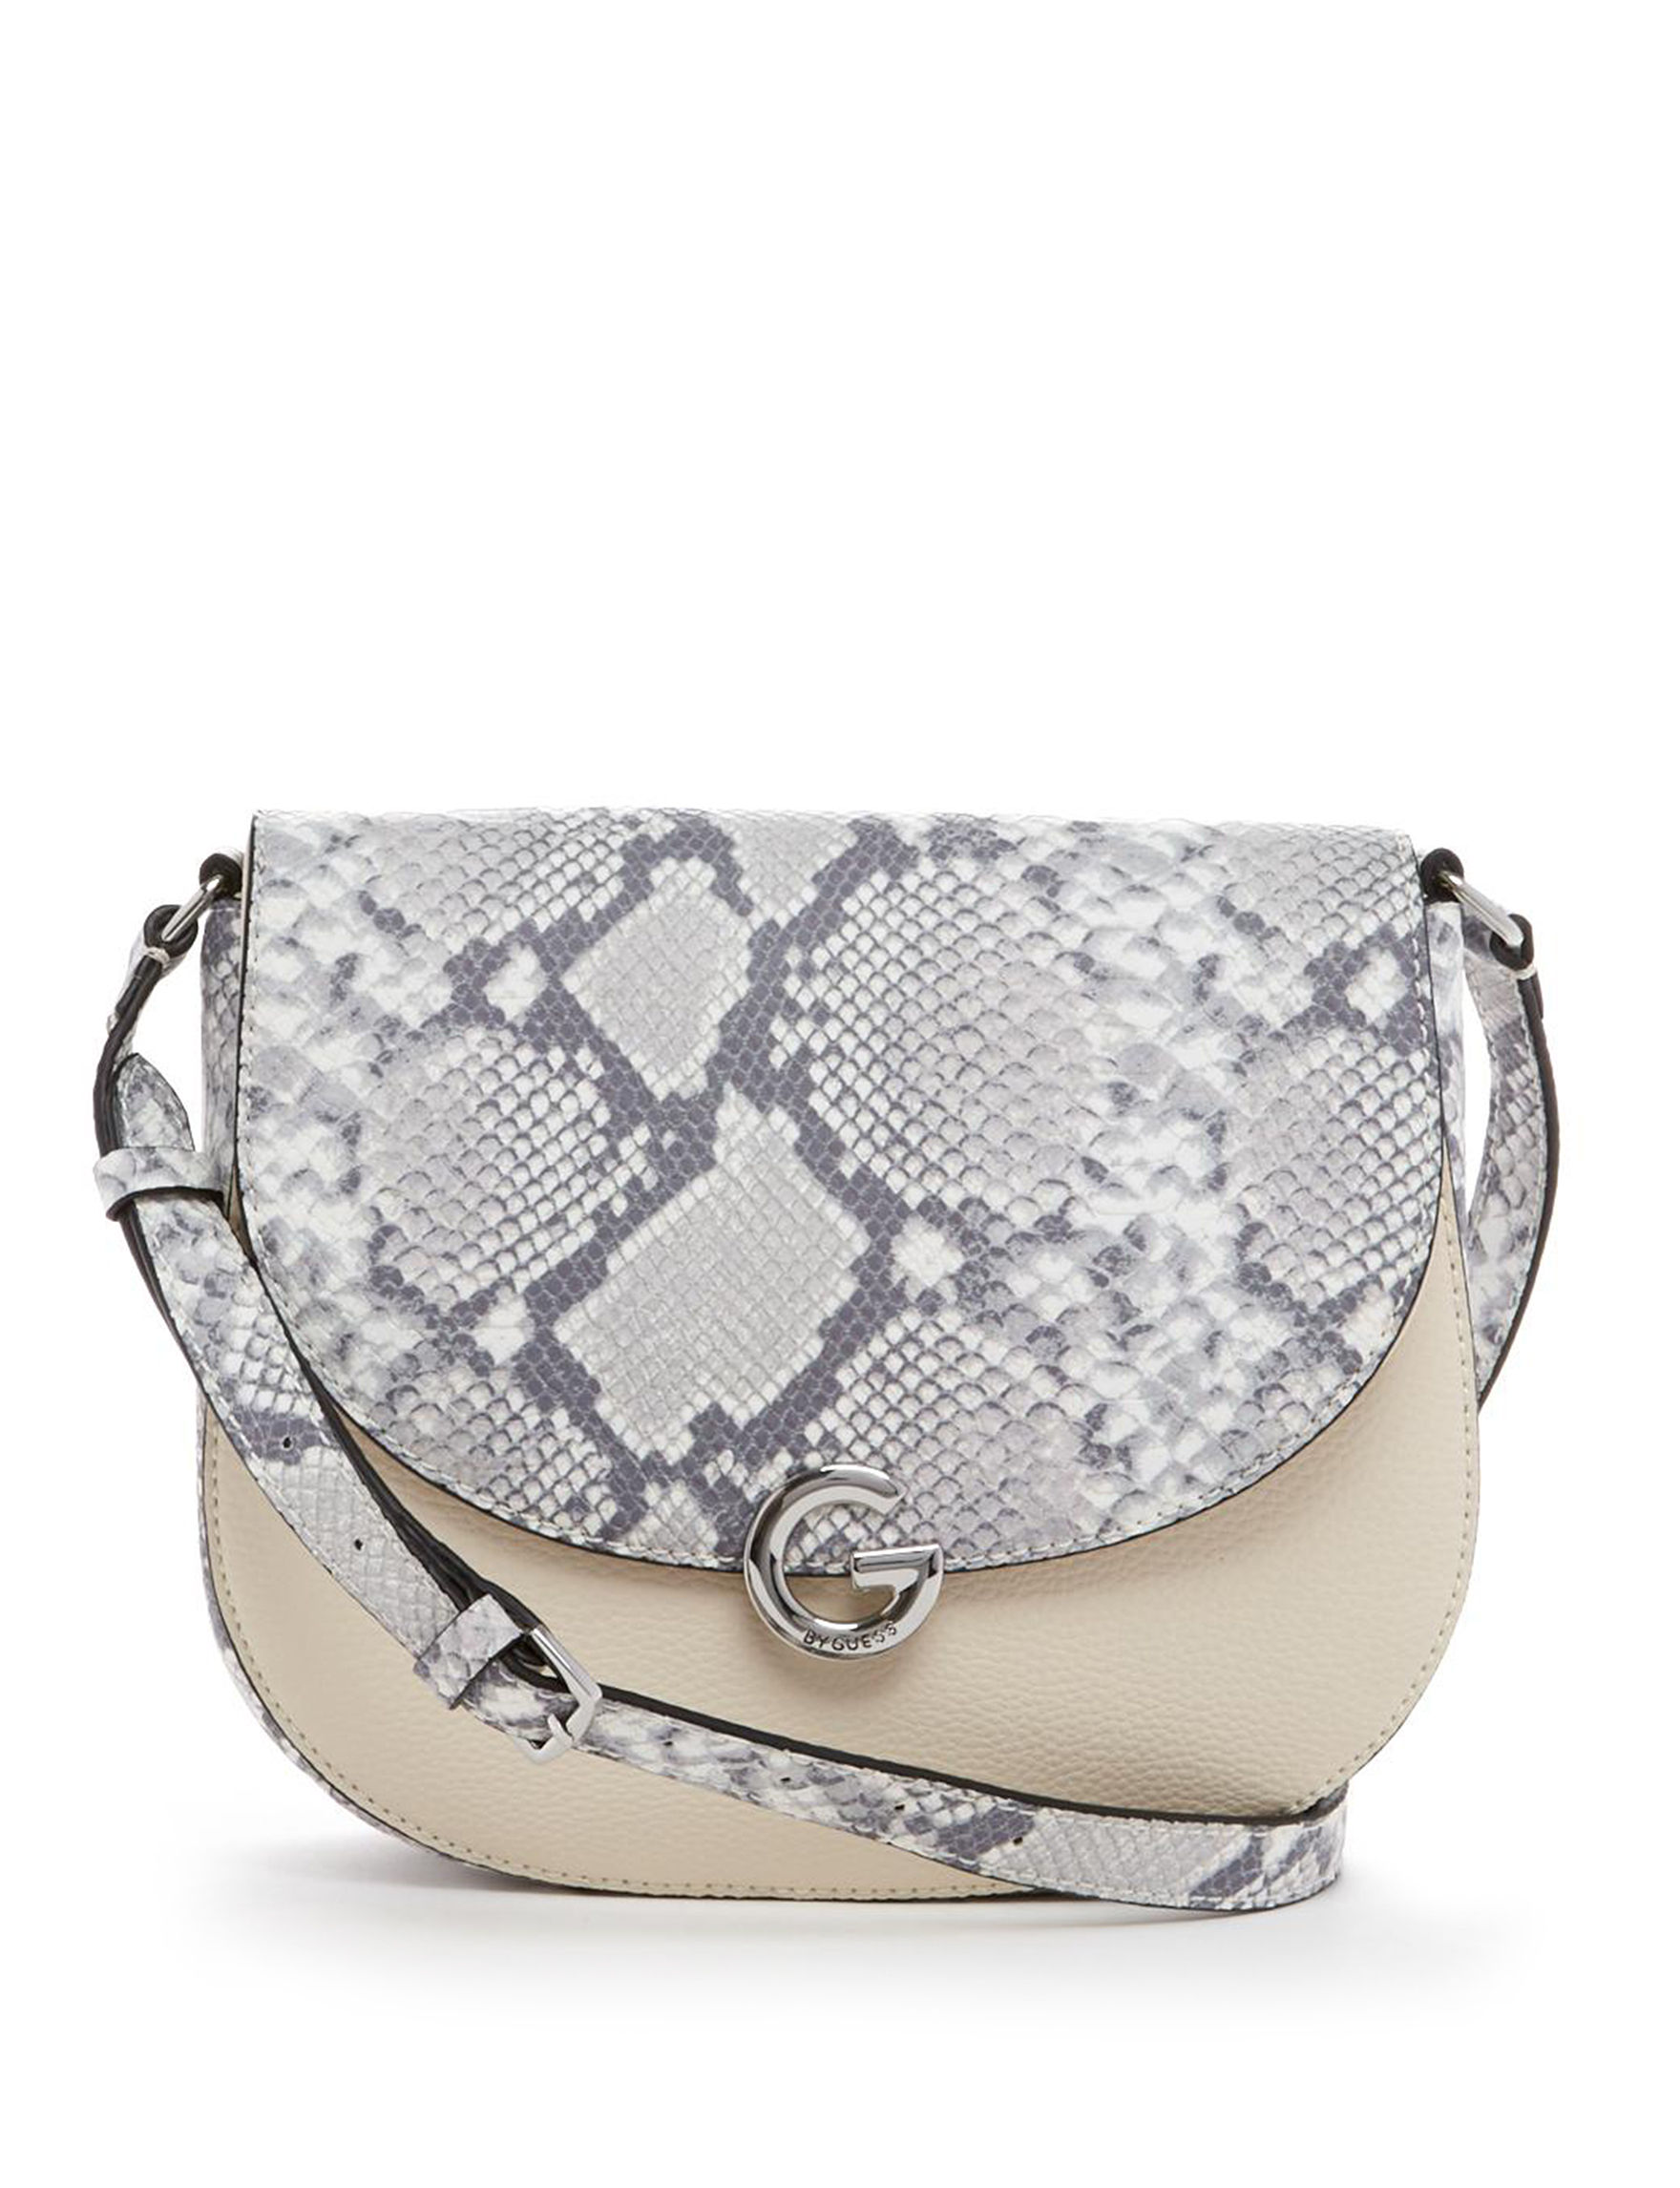 G by Guess Multi